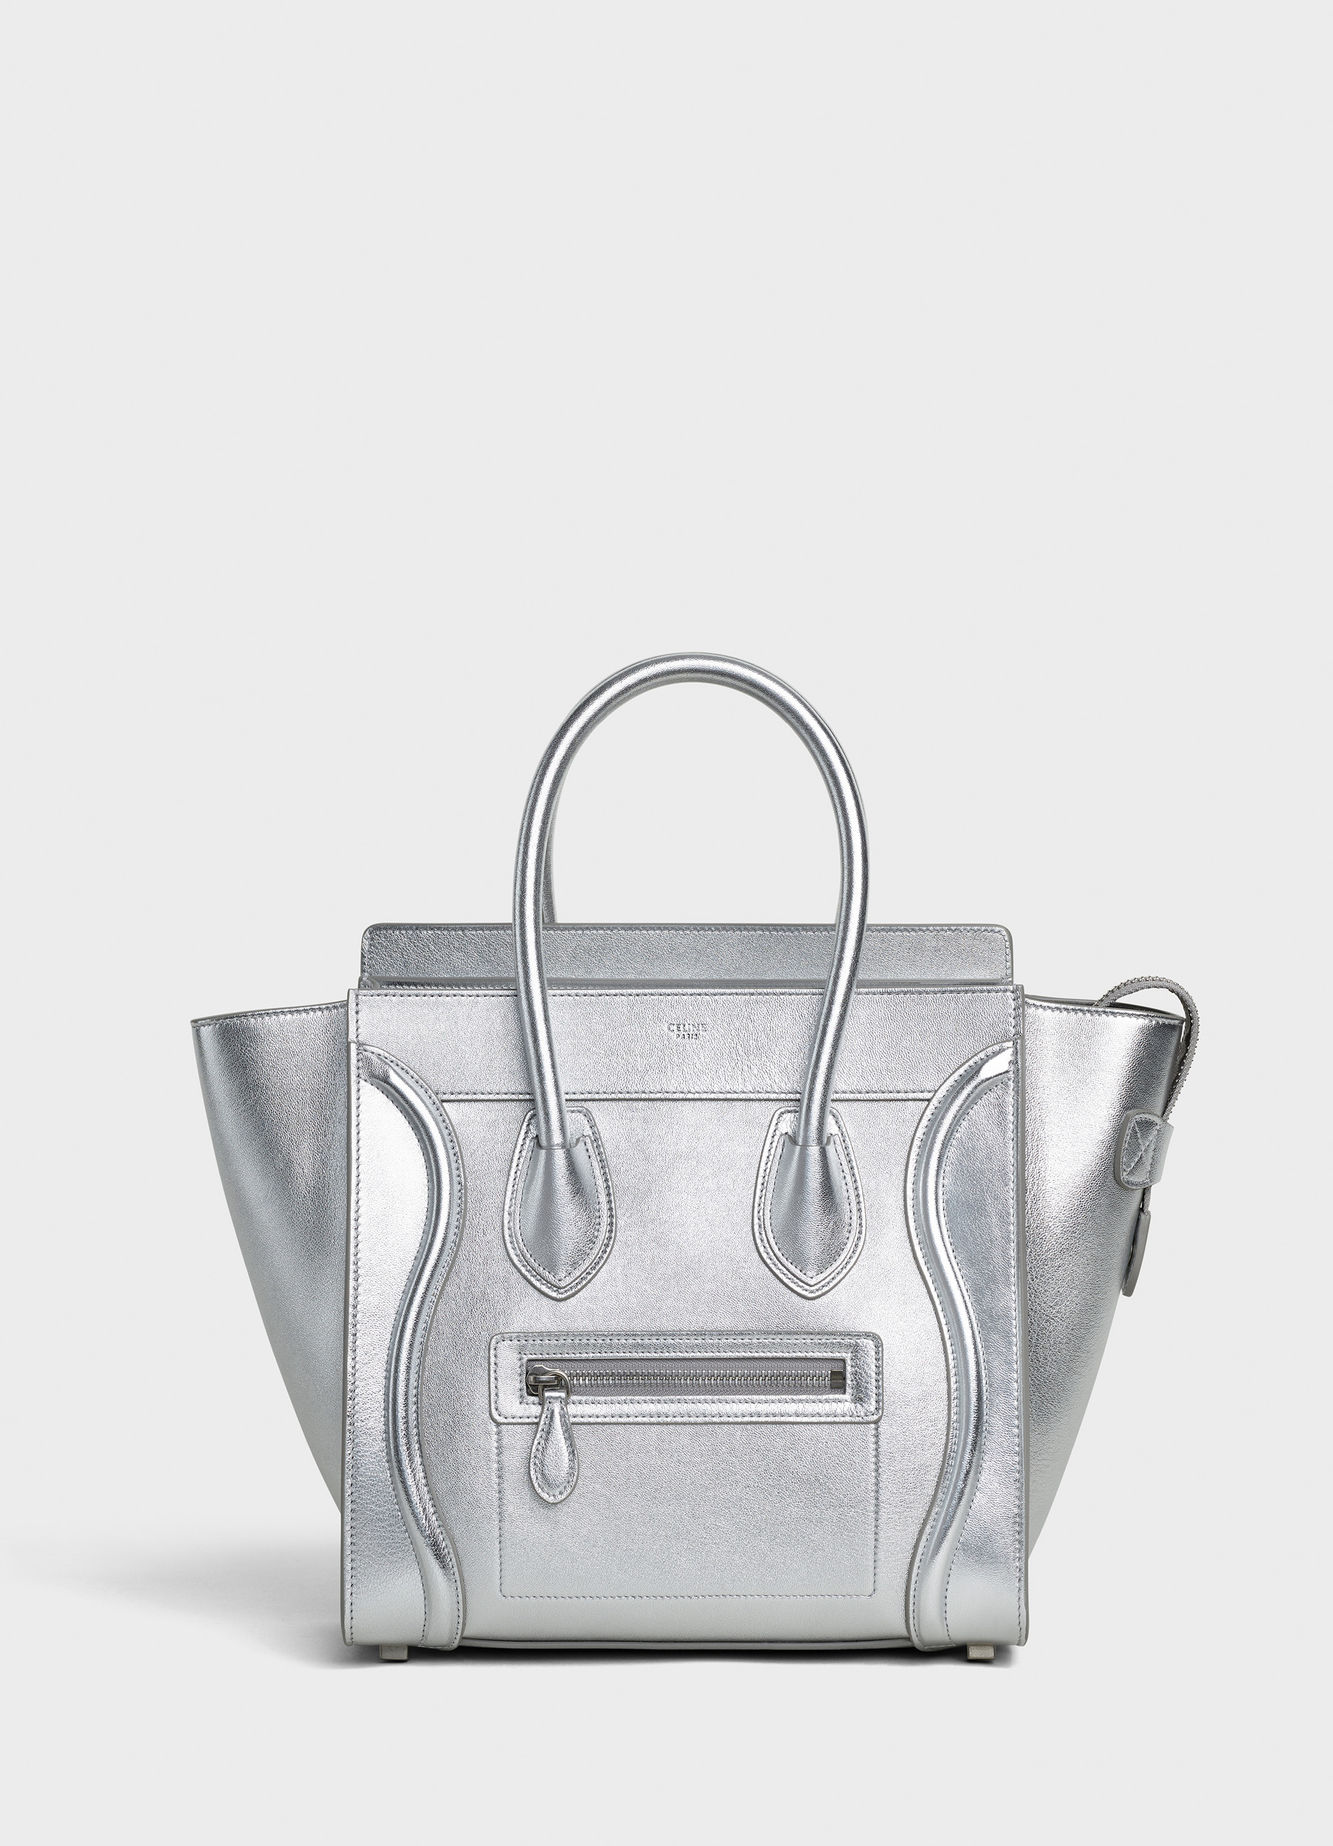 CELINE MICRO LUGGAGE HANDBAG IN LAMINATED LAMBSKIN 189793 SILVER